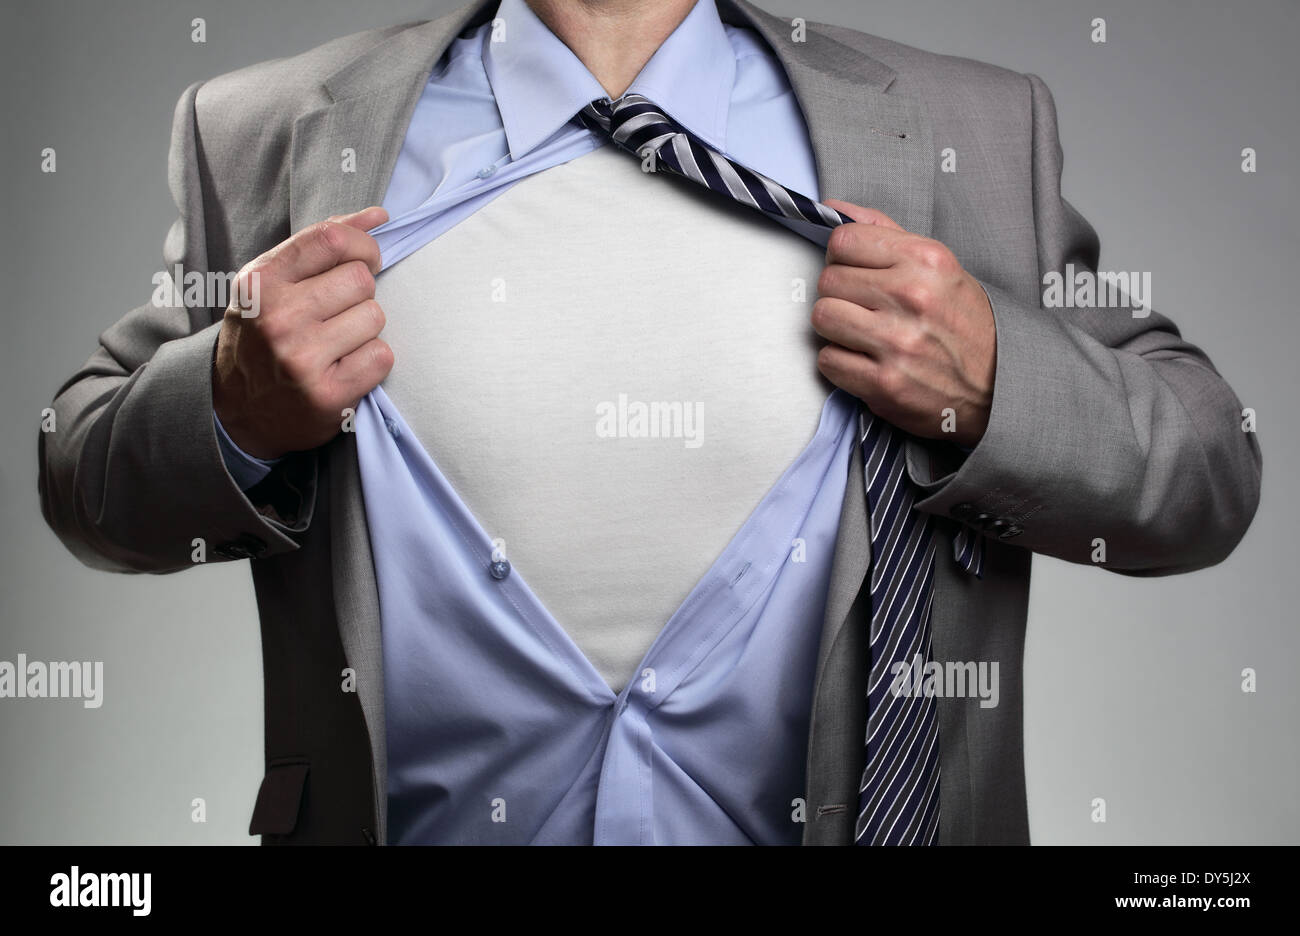 Superhero businessman Photo Stock